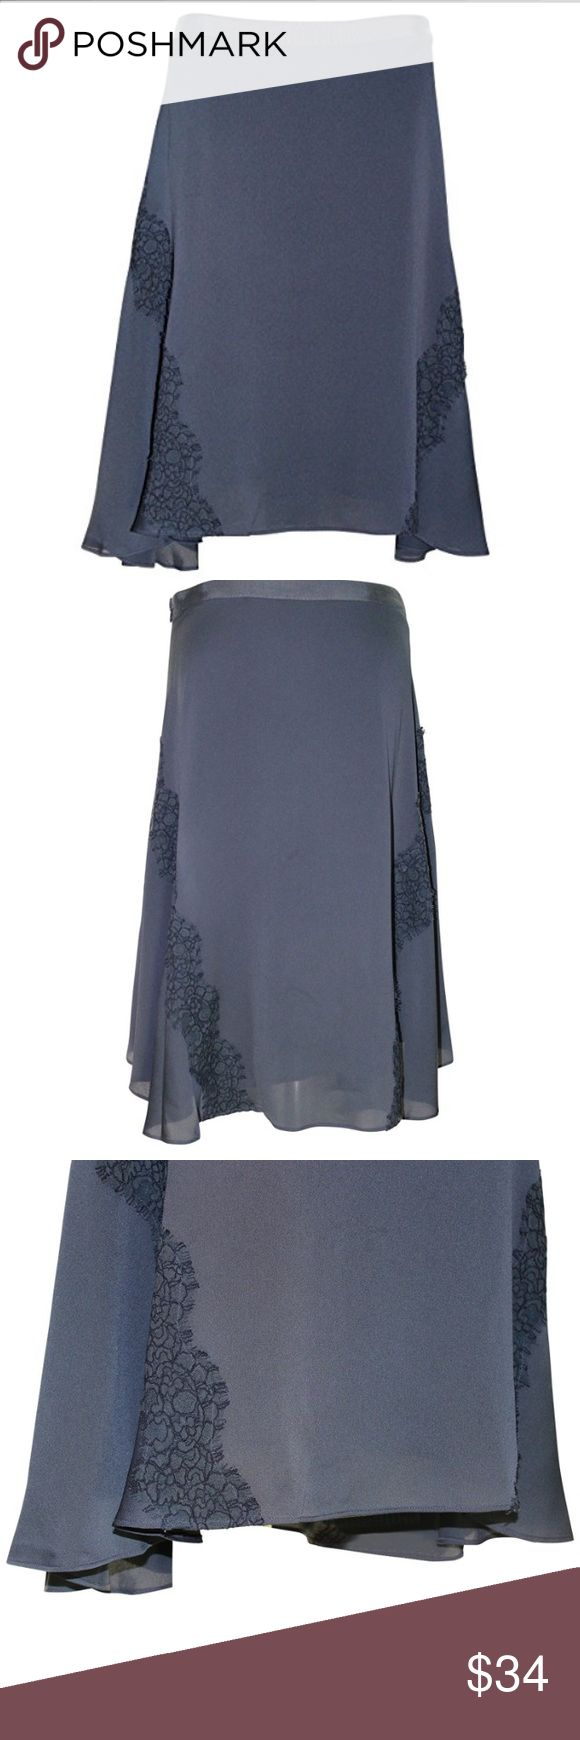 """NWT Banana Republic Handkerchief Lace Trim Skirt Banana Republic Handkerchief Lace Trim Skirt Color:Dark charcoal Size (6) Sexy, Chic, flowy and oh so flattering with a pop of sweet lace. Asymmetrical hem. Skirt length: Regular 26 1/4"""" 14""""Waist laying flat Banana Republic Skirts Asymmetrical"""